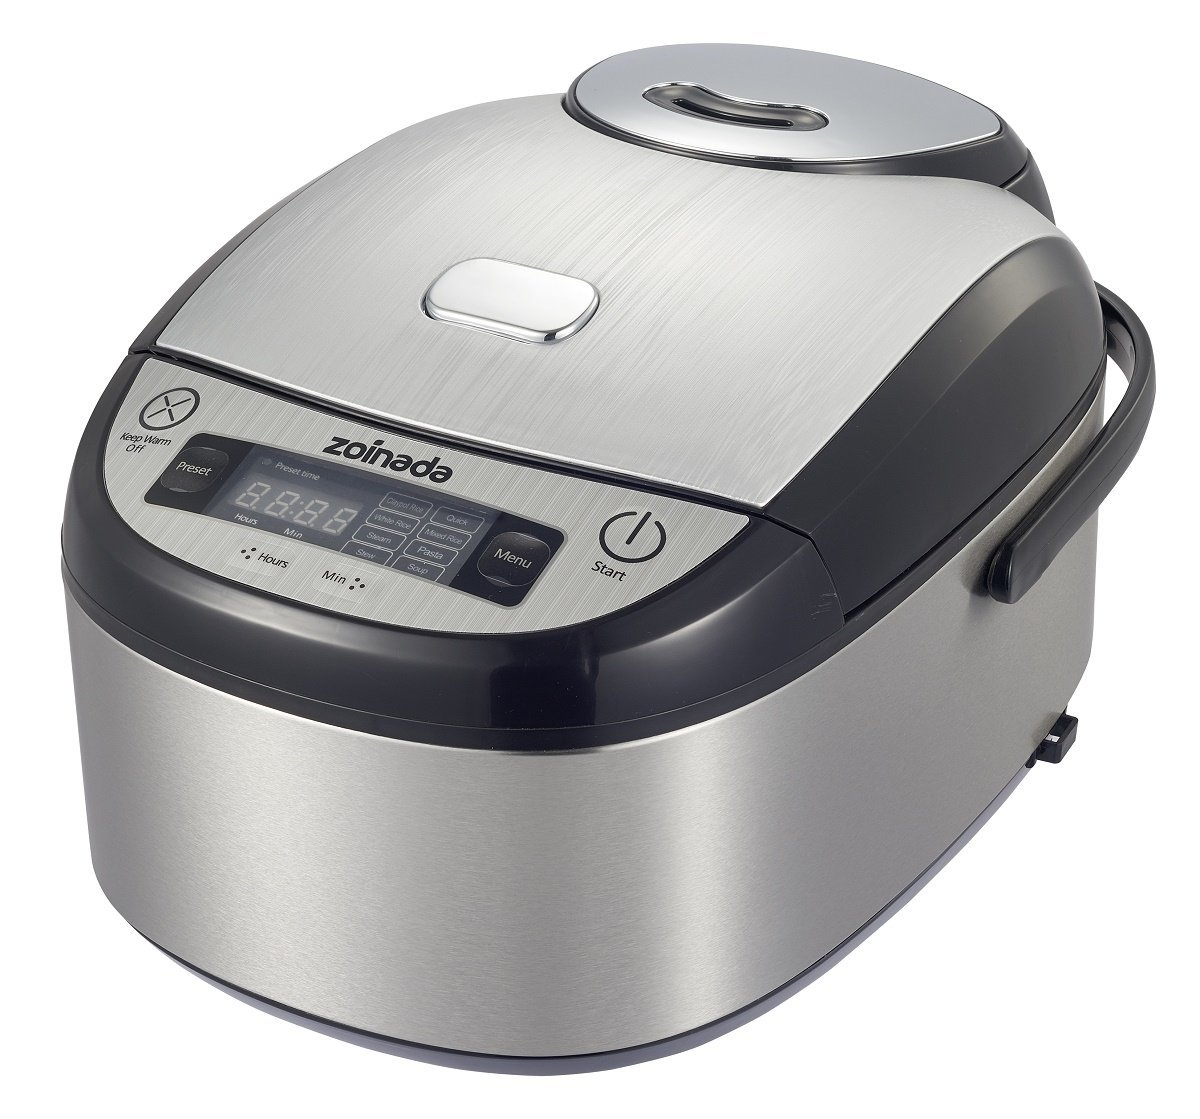 Rice Cooker 401BC-1 8 Cups(uncooked) 8-in-1 Programmable Multi Cooker,Slow cooker and Warmer, 24 Hours Preset, with Cooking Recipe,Stainless Steel,Silver and Black